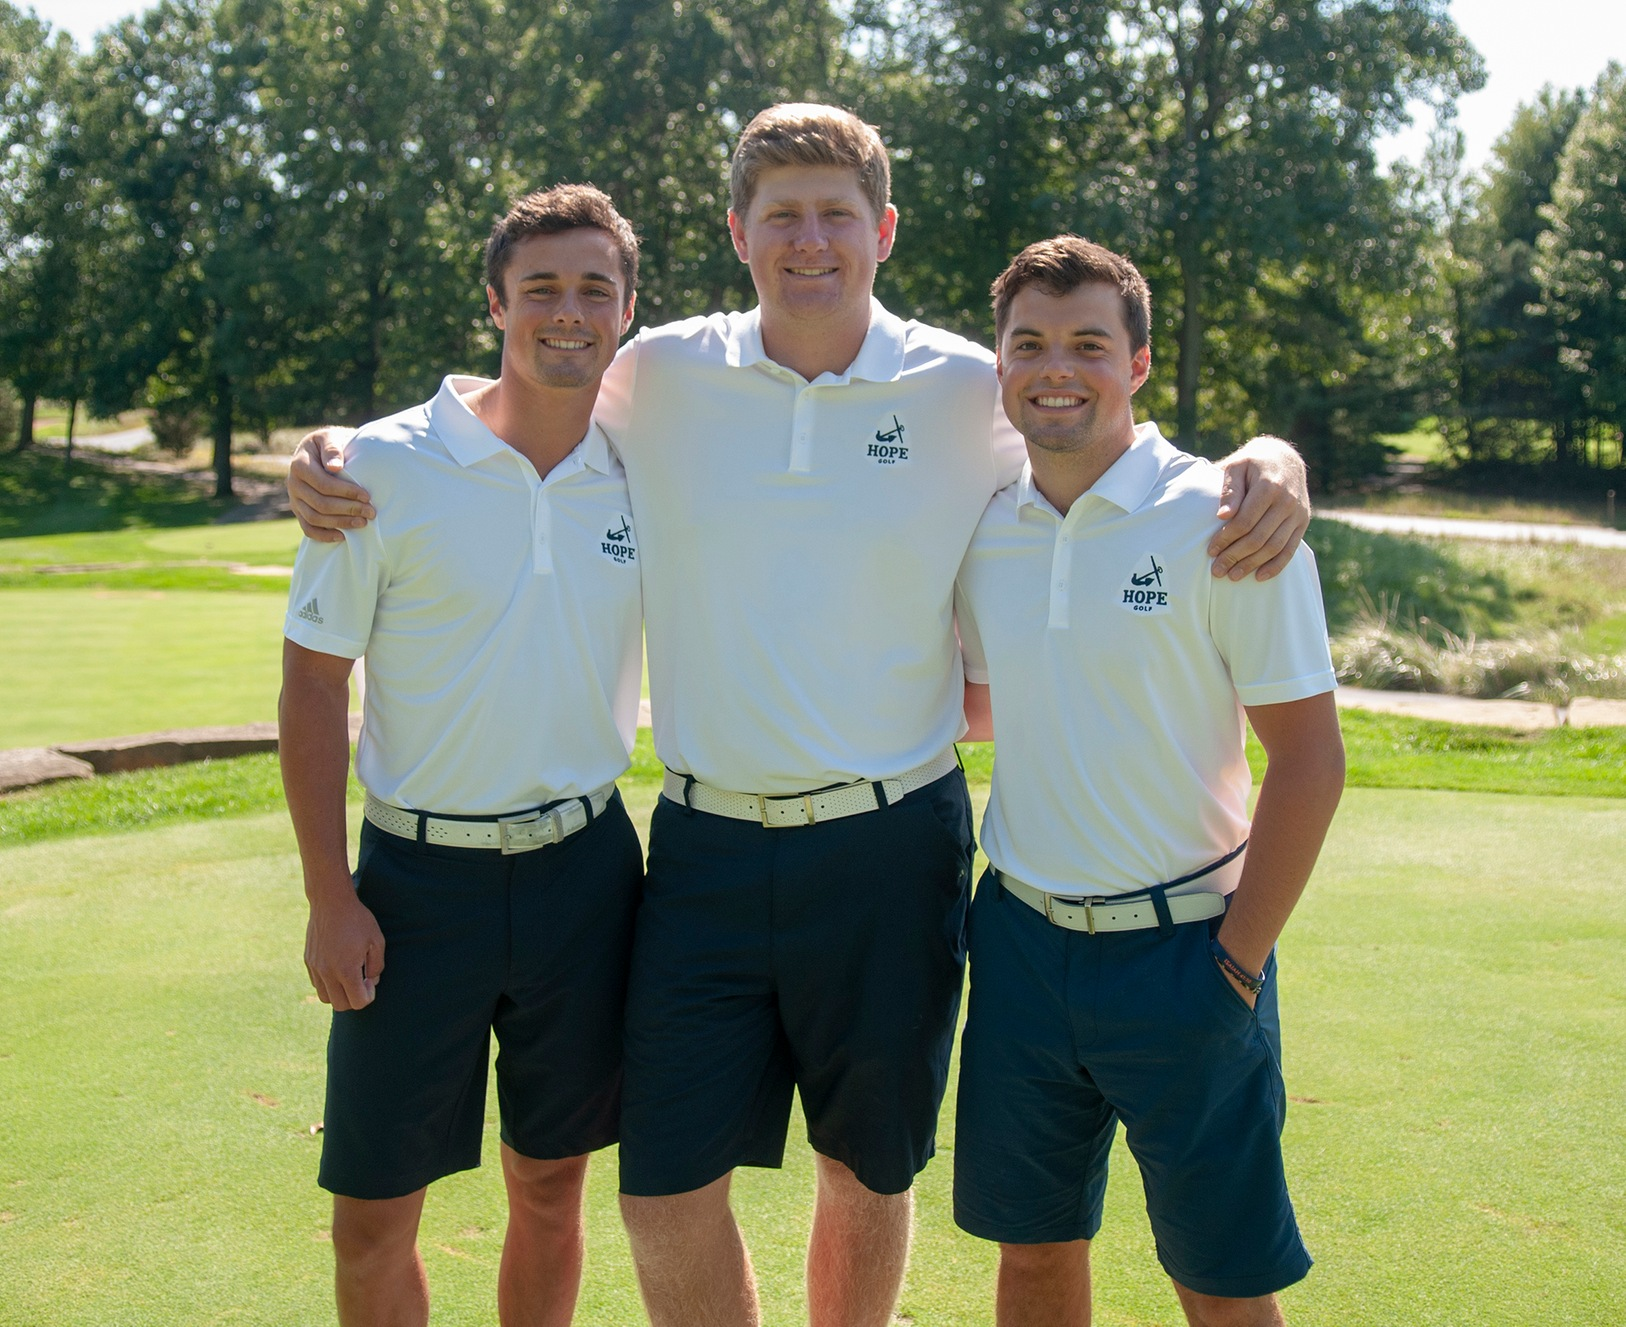 Ben Kramer, Josh Gibson and Andrew Goble pose together on the first tee at Wuskowhan Players Club